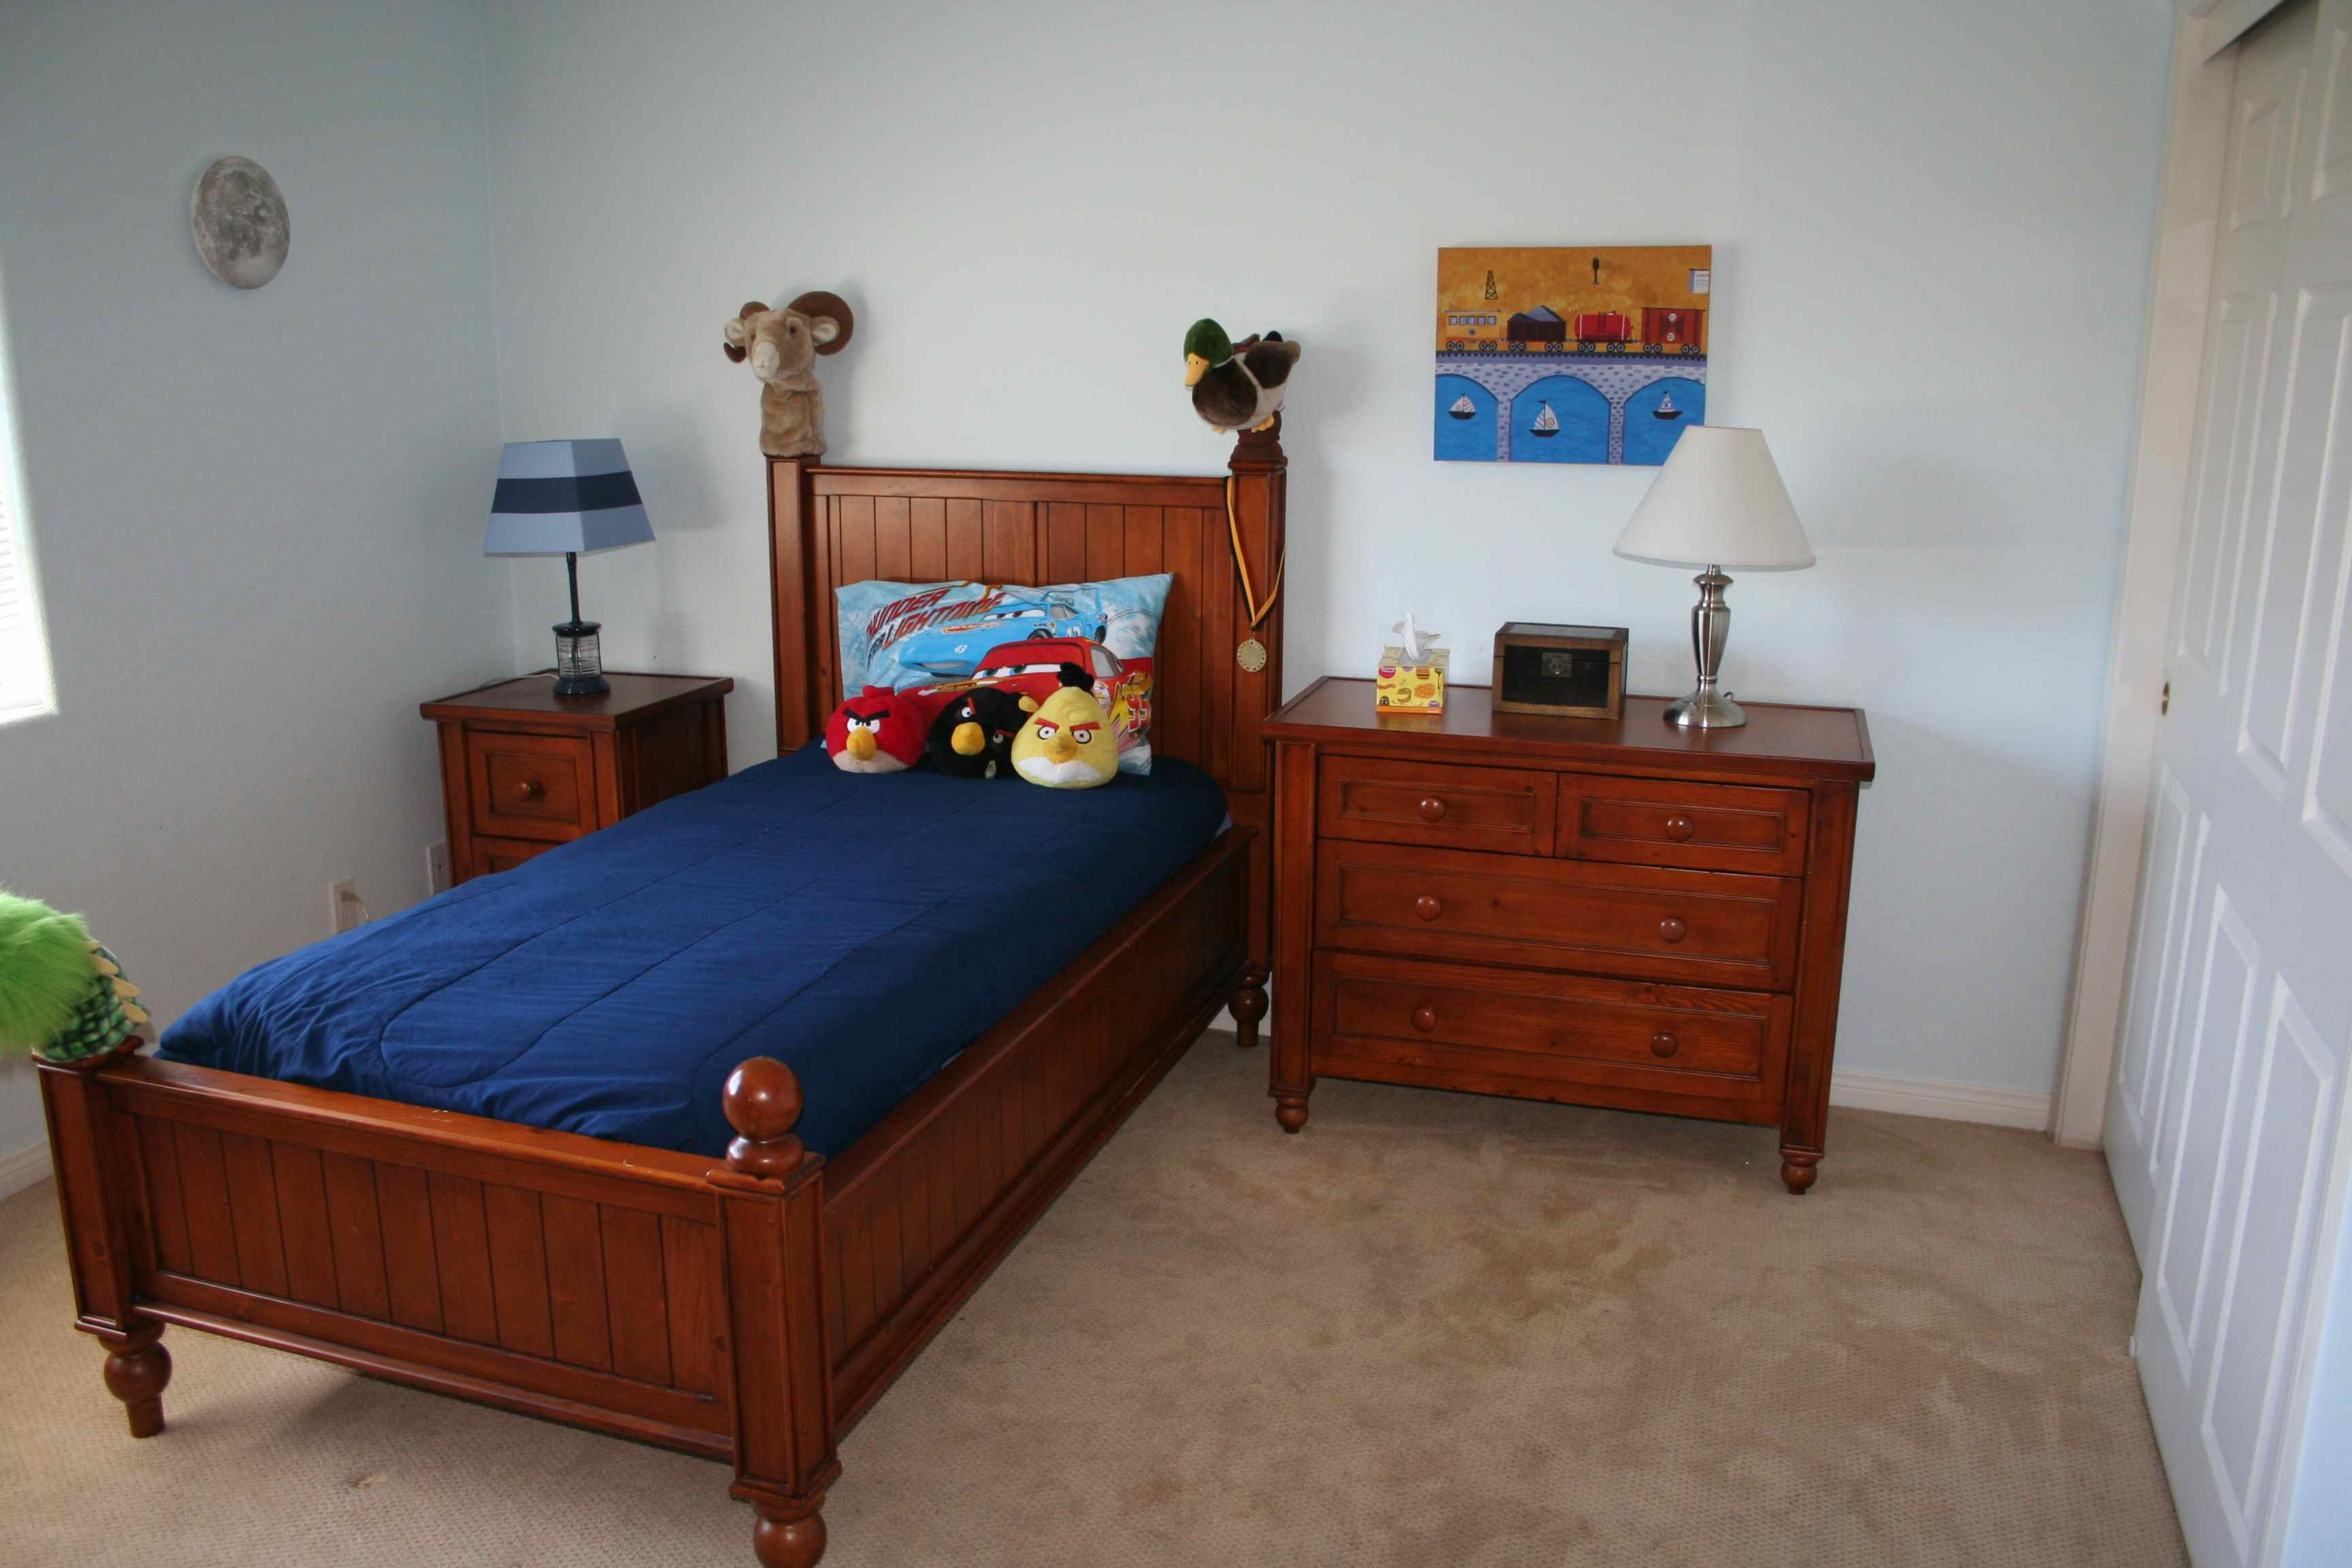 Childs Bedroom back to school boogie child's bedroom complete - momma can